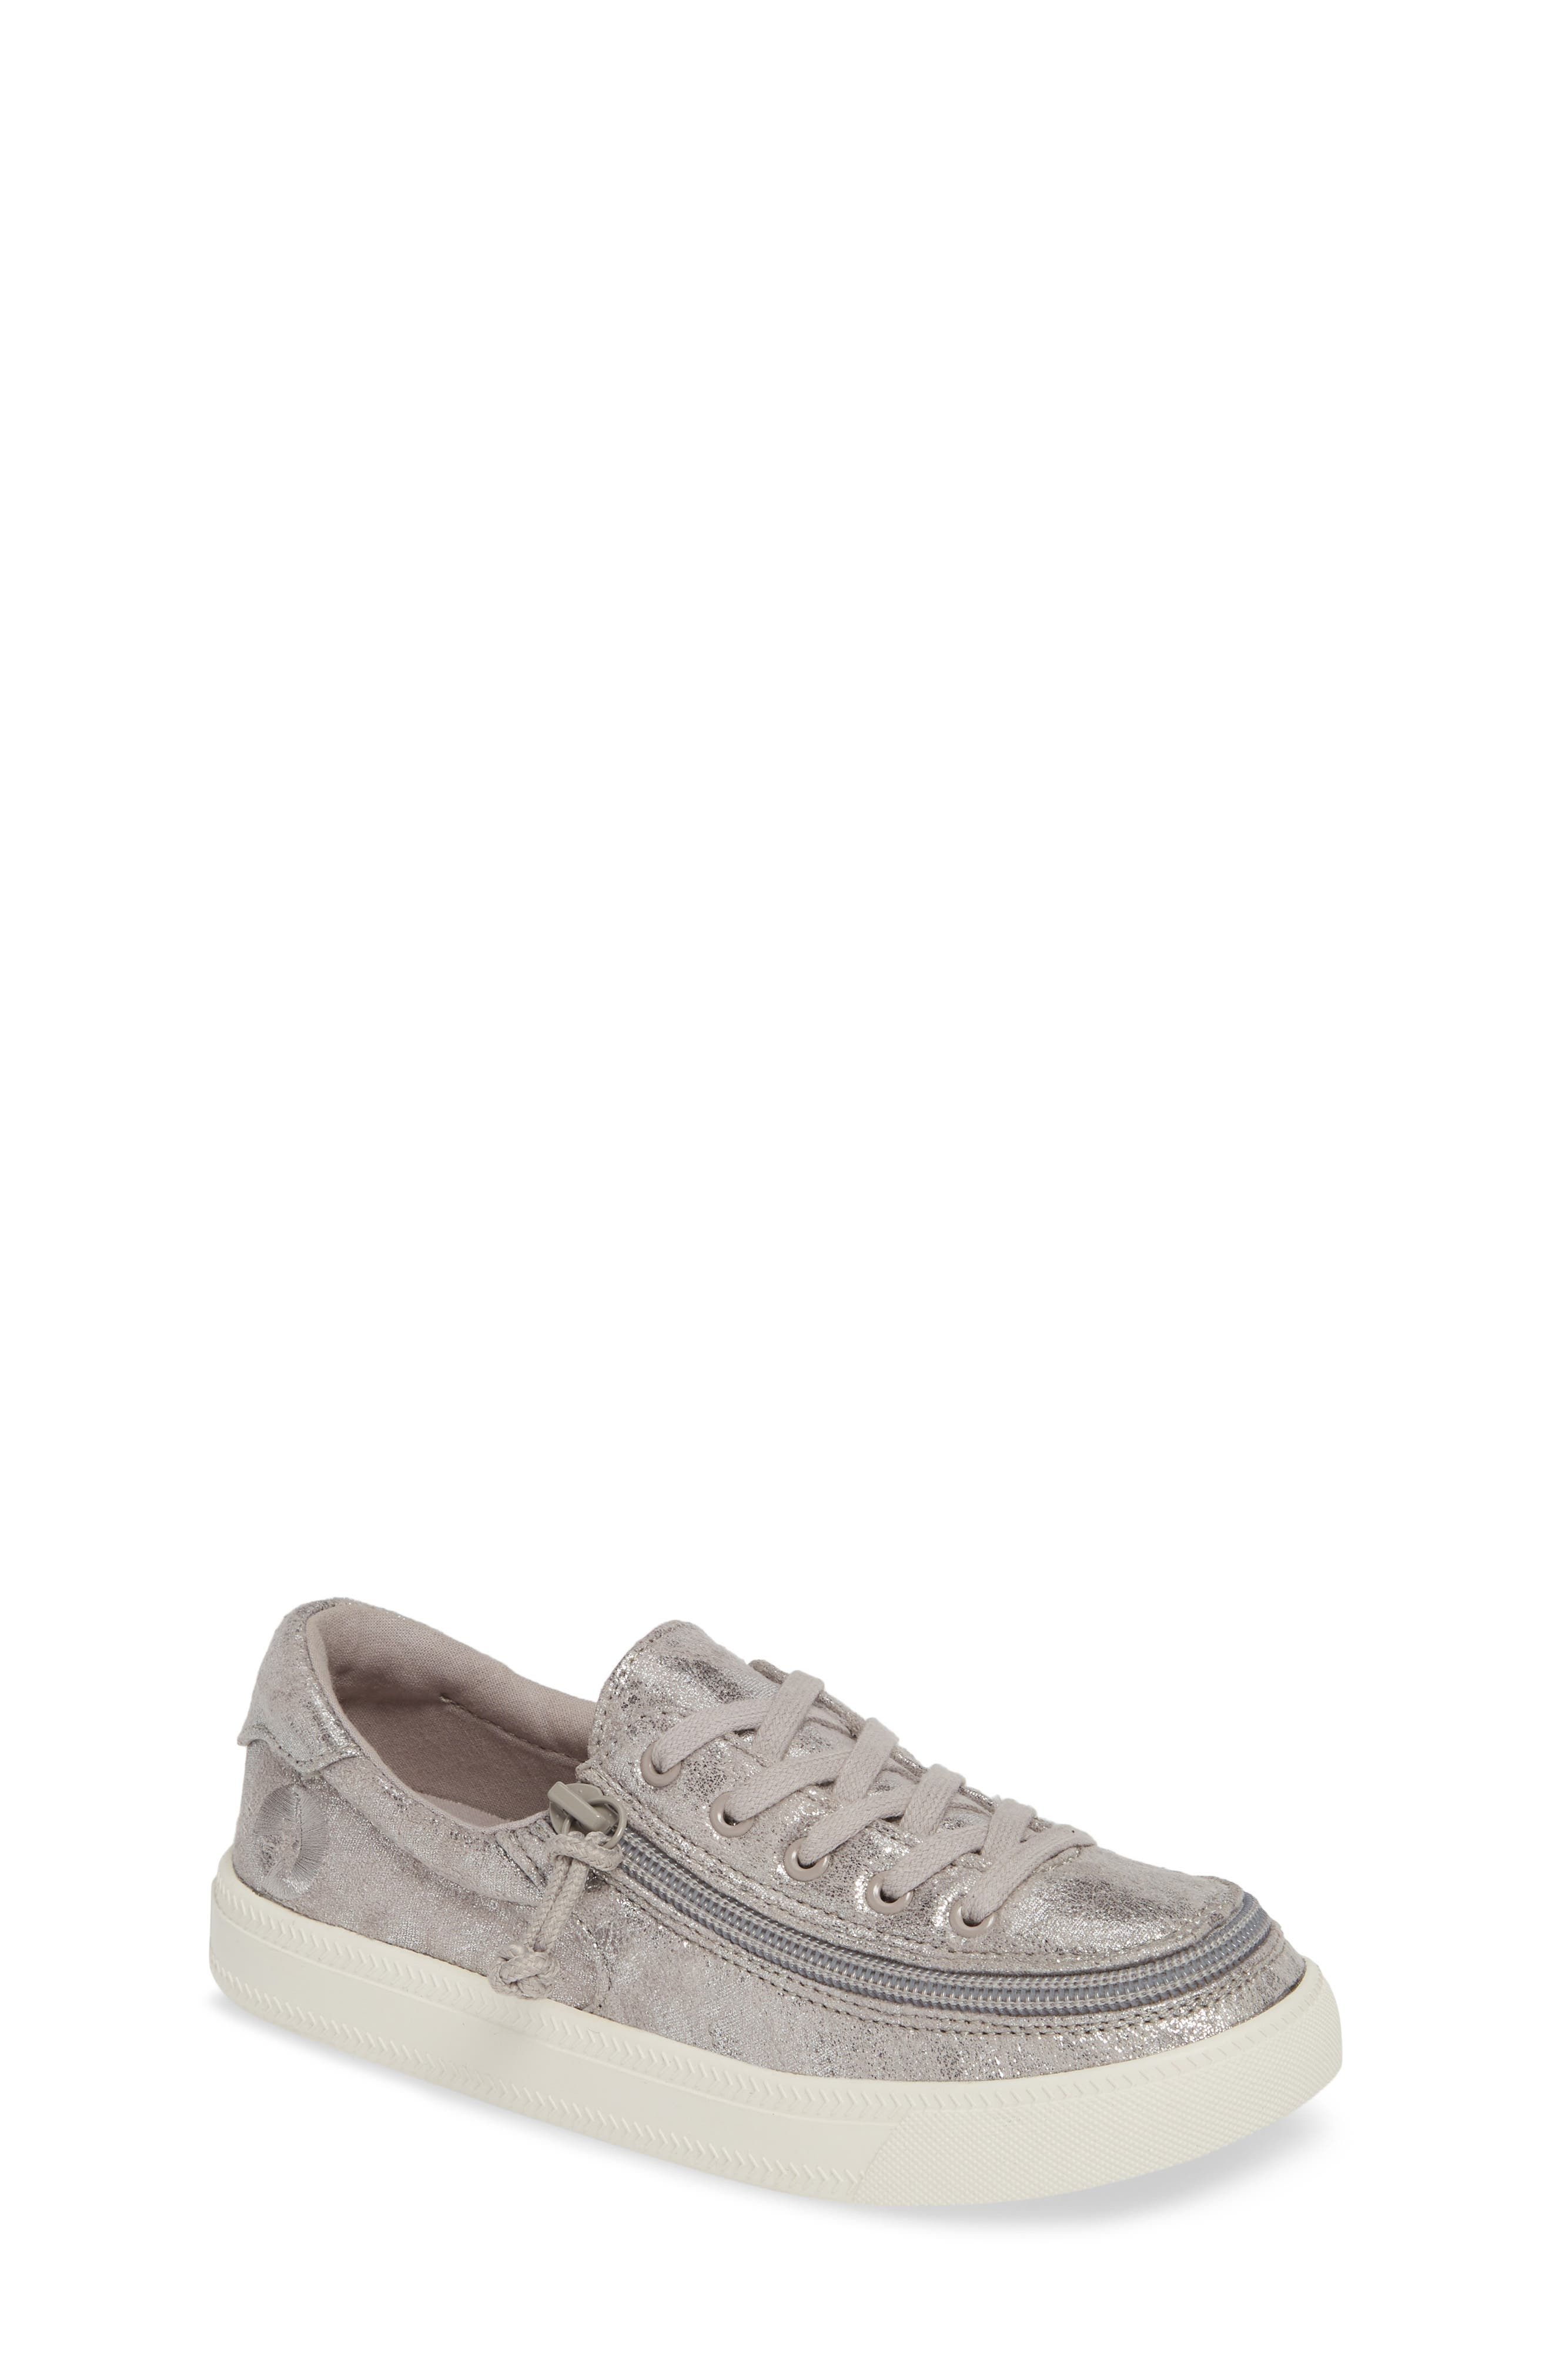 BILLY FOOTWEAR Zip Around Low Top Sneaker, Main, color, GREY METALLIC